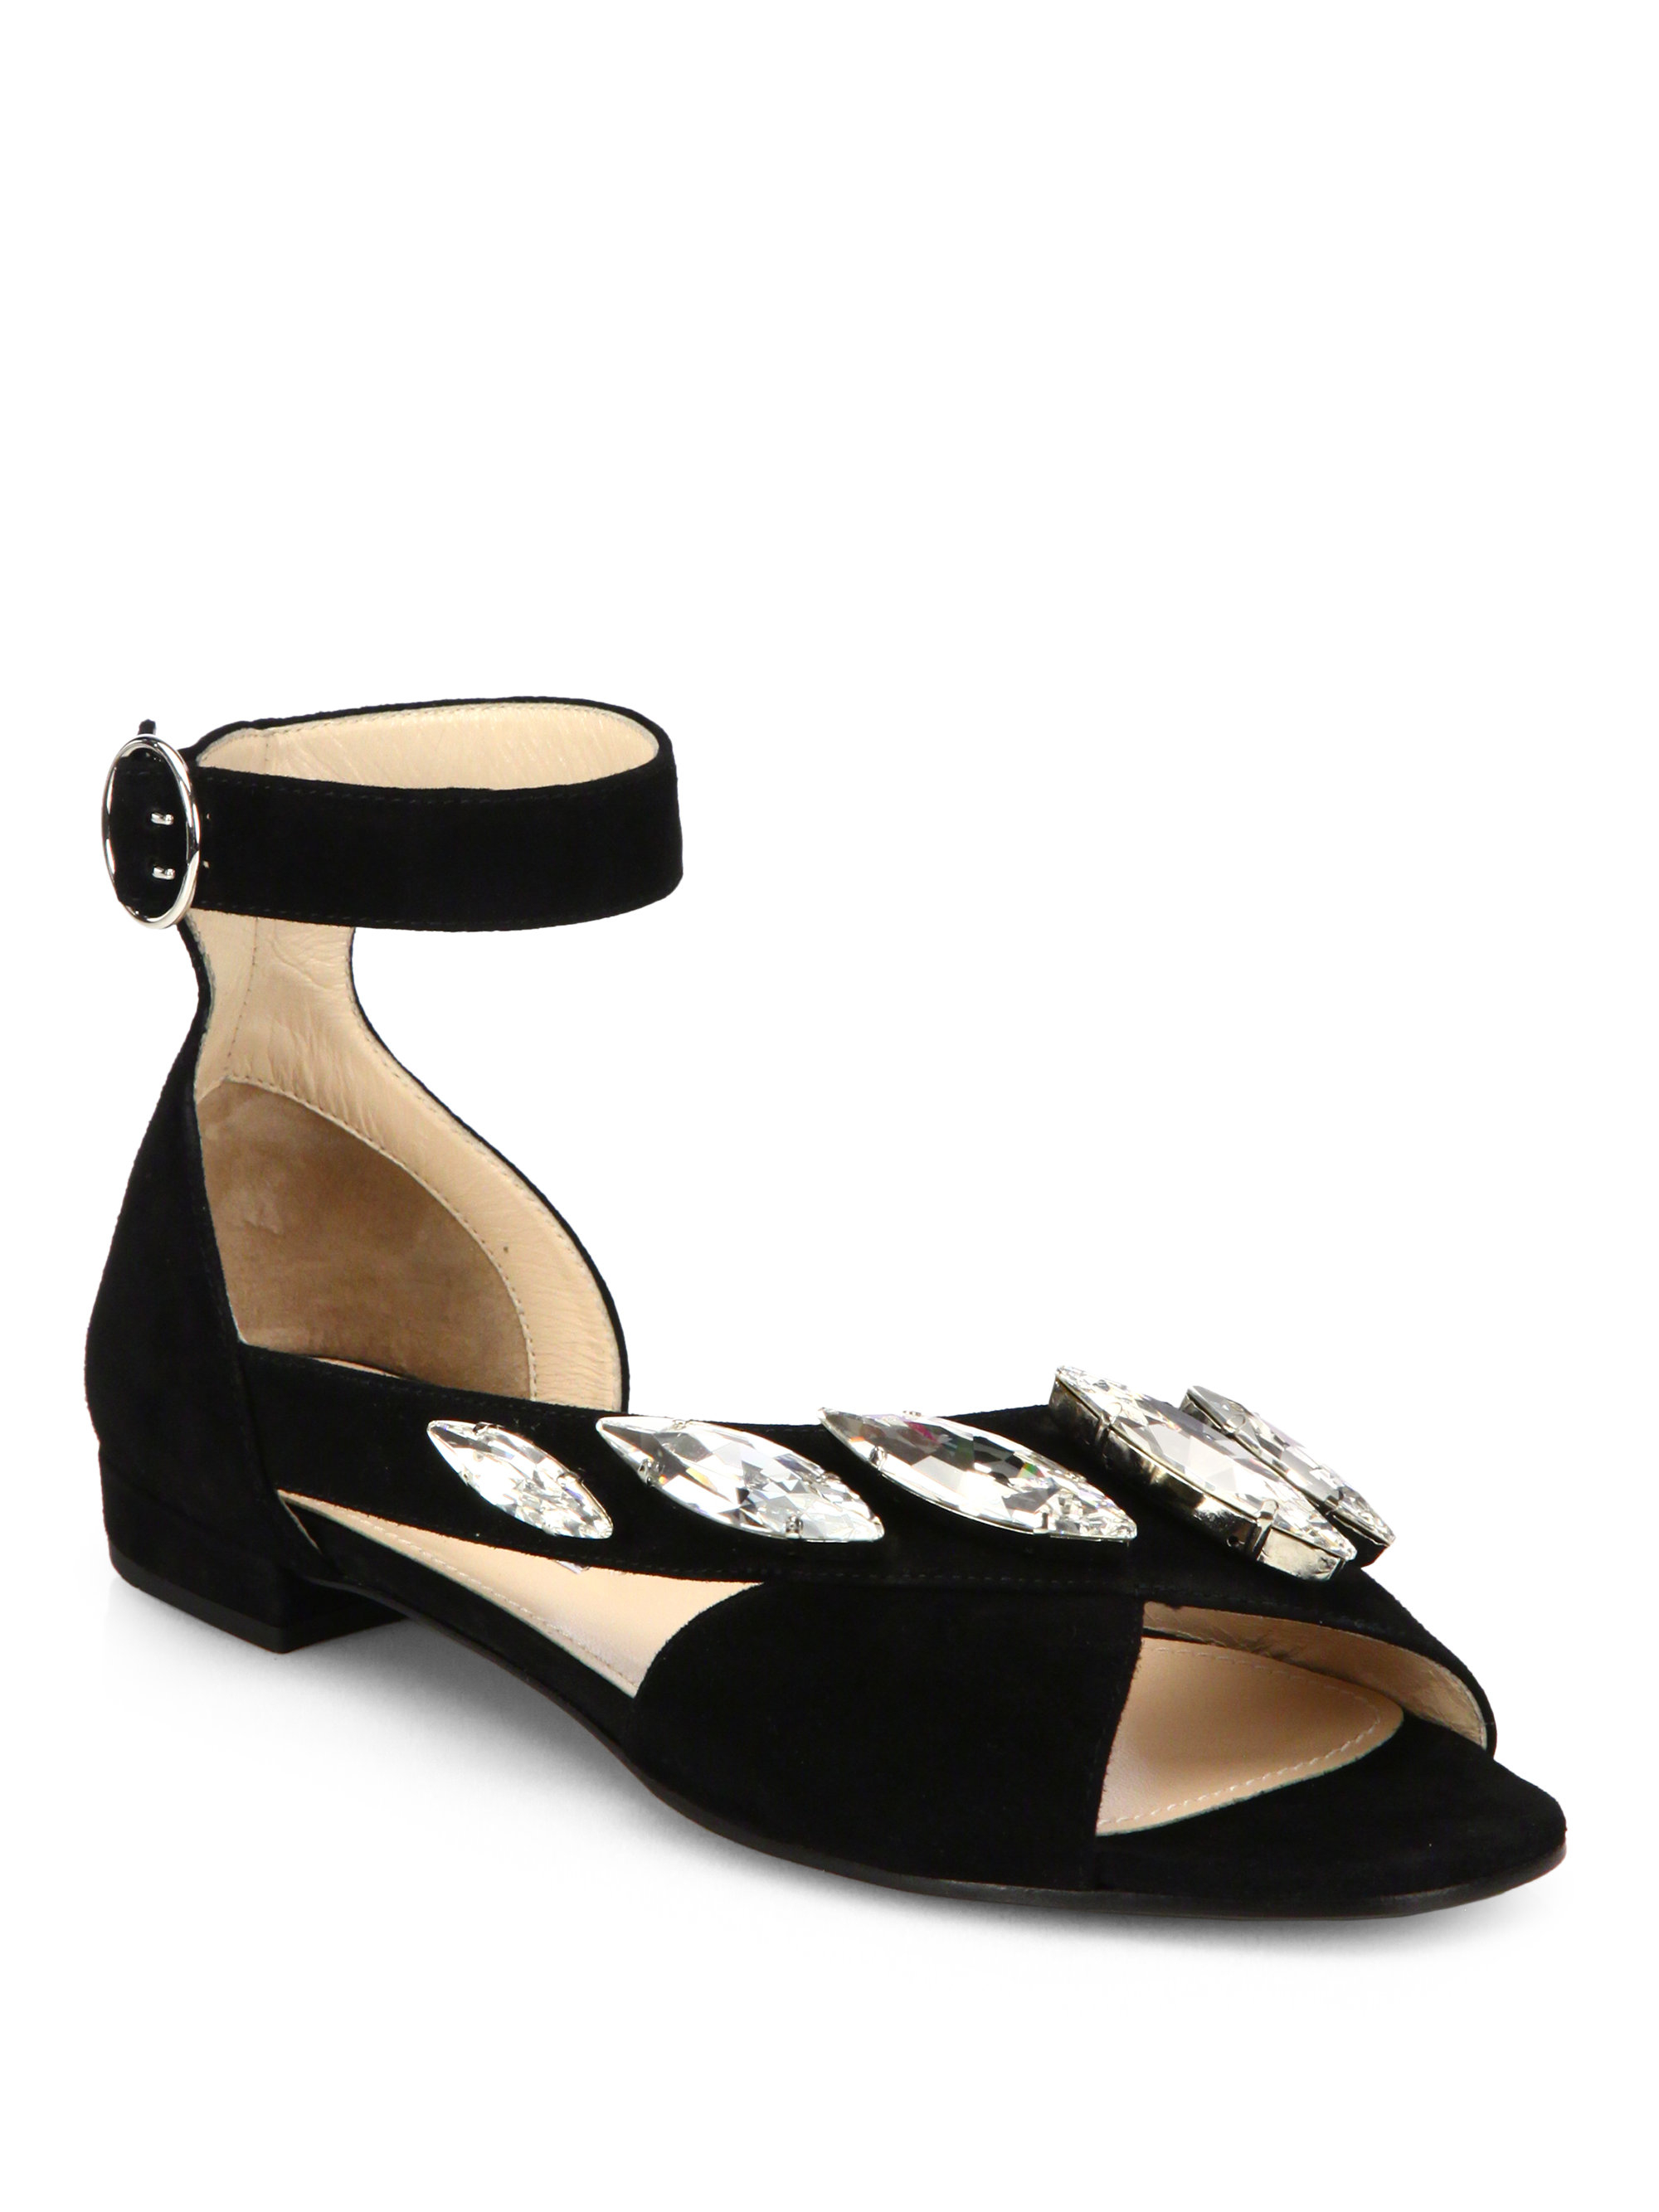 7c04b0845 Lyst - Prada Jeweled Suede Anklestrap Sandals in Black